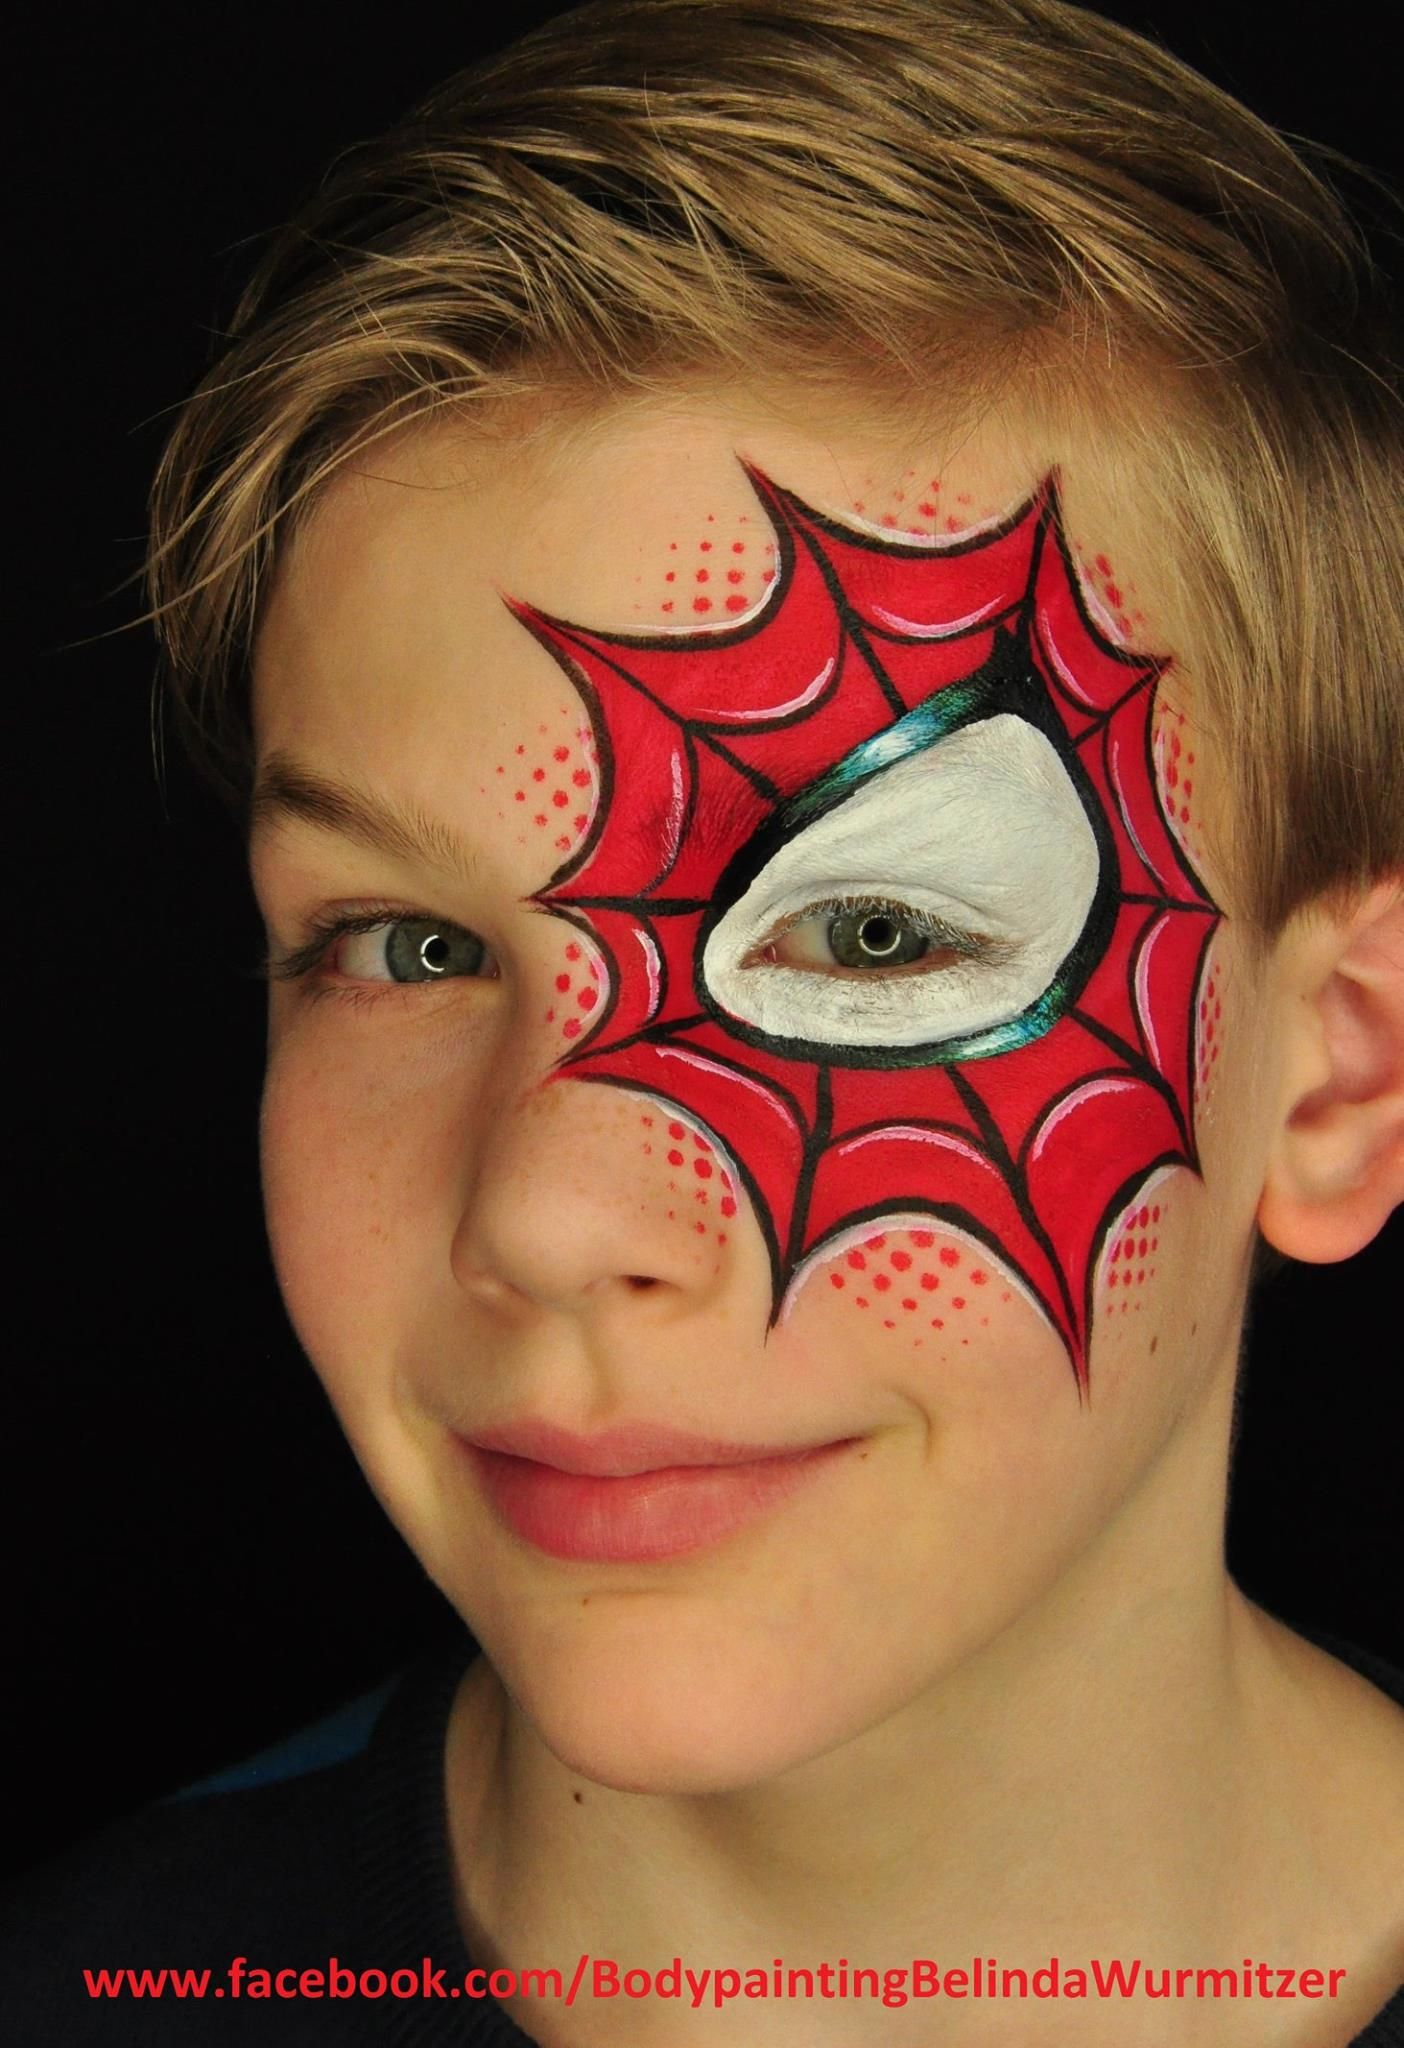 awesome and unusual spider man face painting face painting pinterest kinderschminken. Black Bedroom Furniture Sets. Home Design Ideas